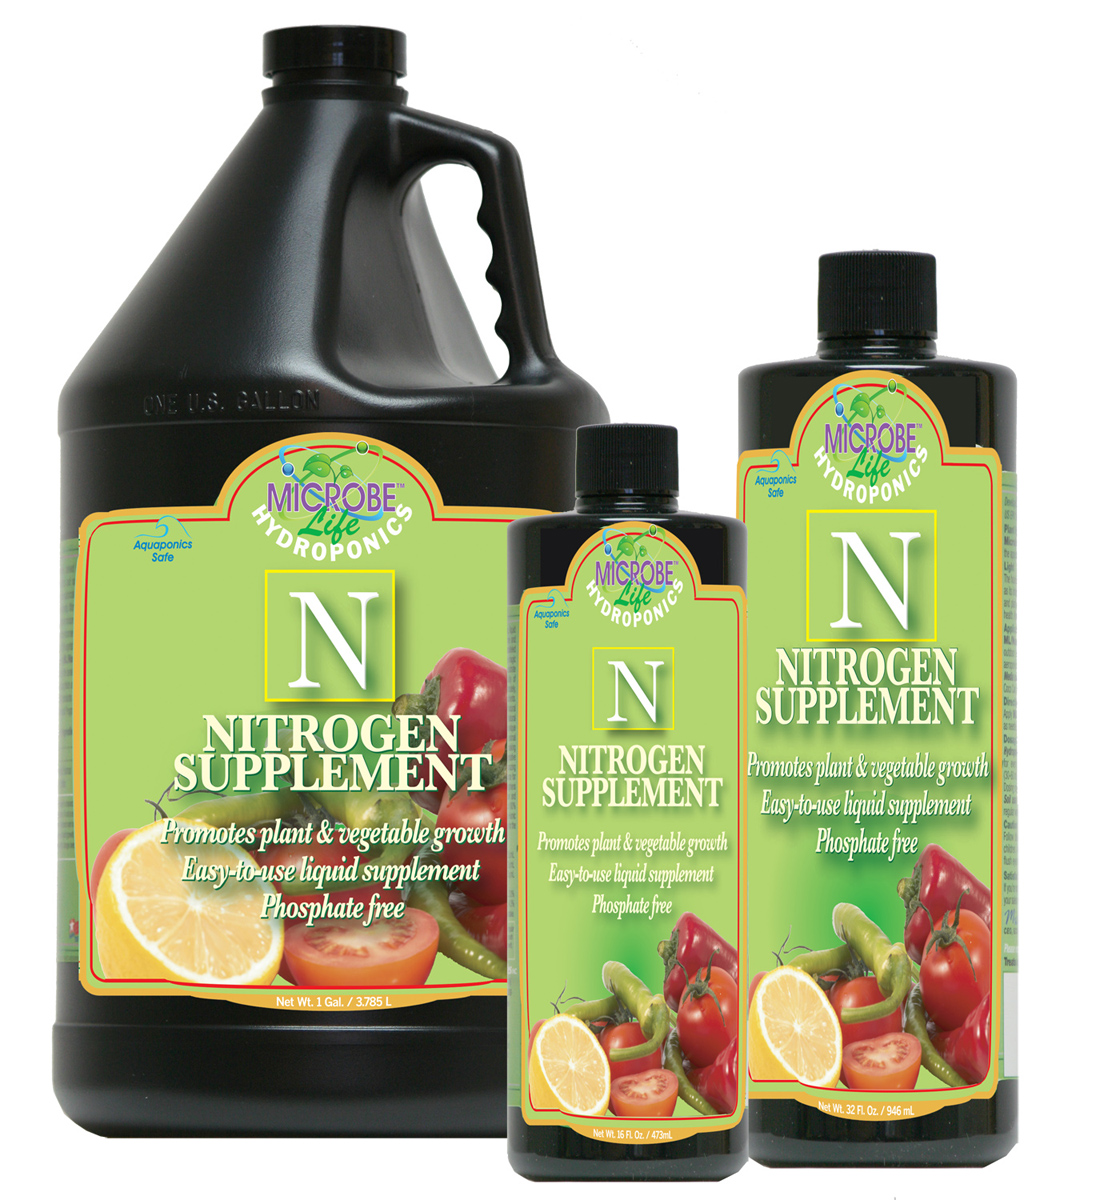 Microbe Life Nitrogen Supplement 1 Quart